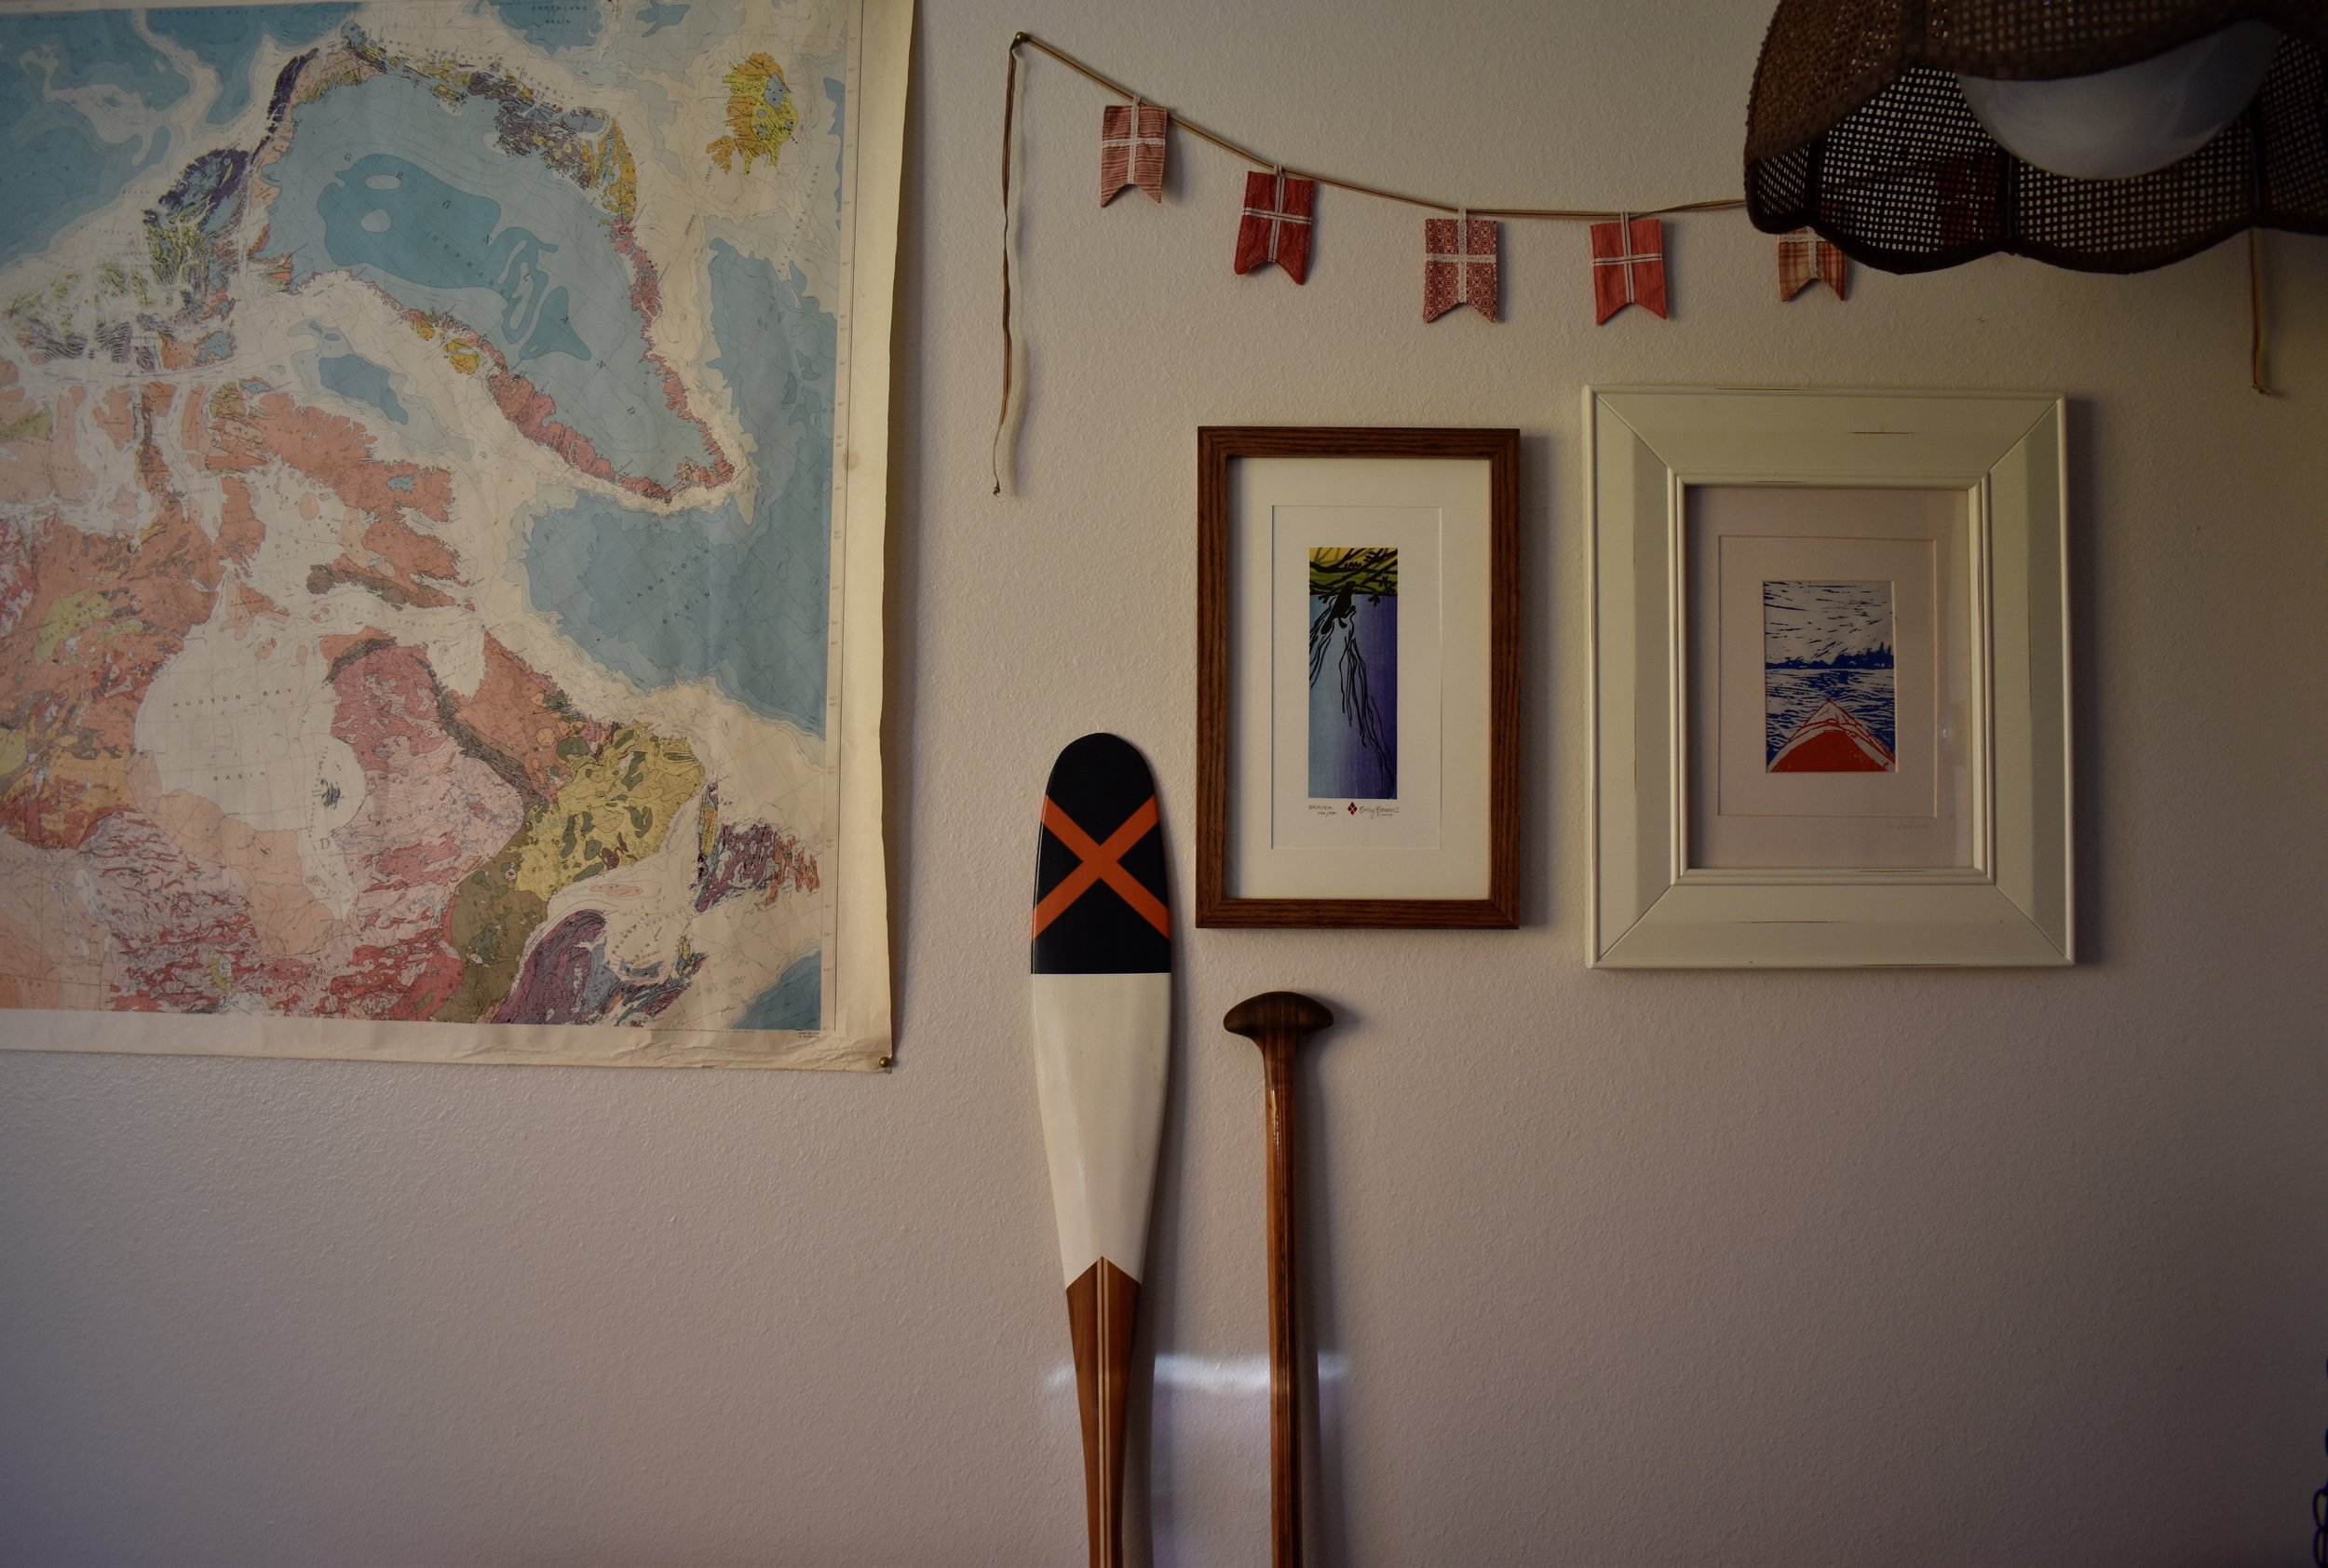 My current living space - filled with vintage maps and locally-made artwork and paddles, of course.